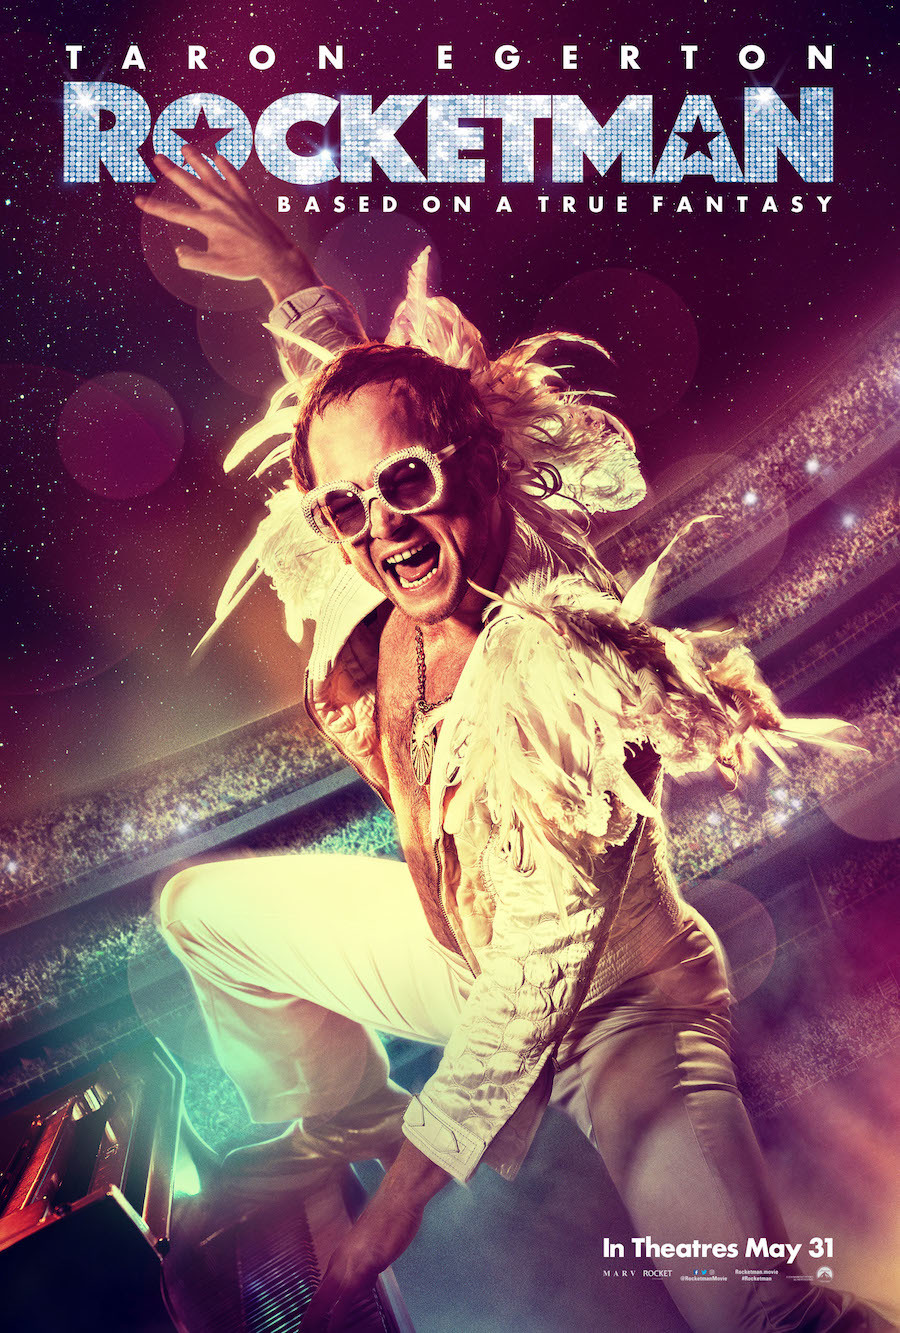 Rocketman (2019) - Directed by: Dexter FletcherStarring: Taron Egerton, Jamie Bell, Richard Madden, Bryce Dallas HowardRated: R for Language Throughout, Some Drug Use and Sexual ContentRunning Time: 2 h 1 mTMM Score: 4 stars out of 5STRENGTHS: Directing, Music, ActingWEAKNESSES: Ending